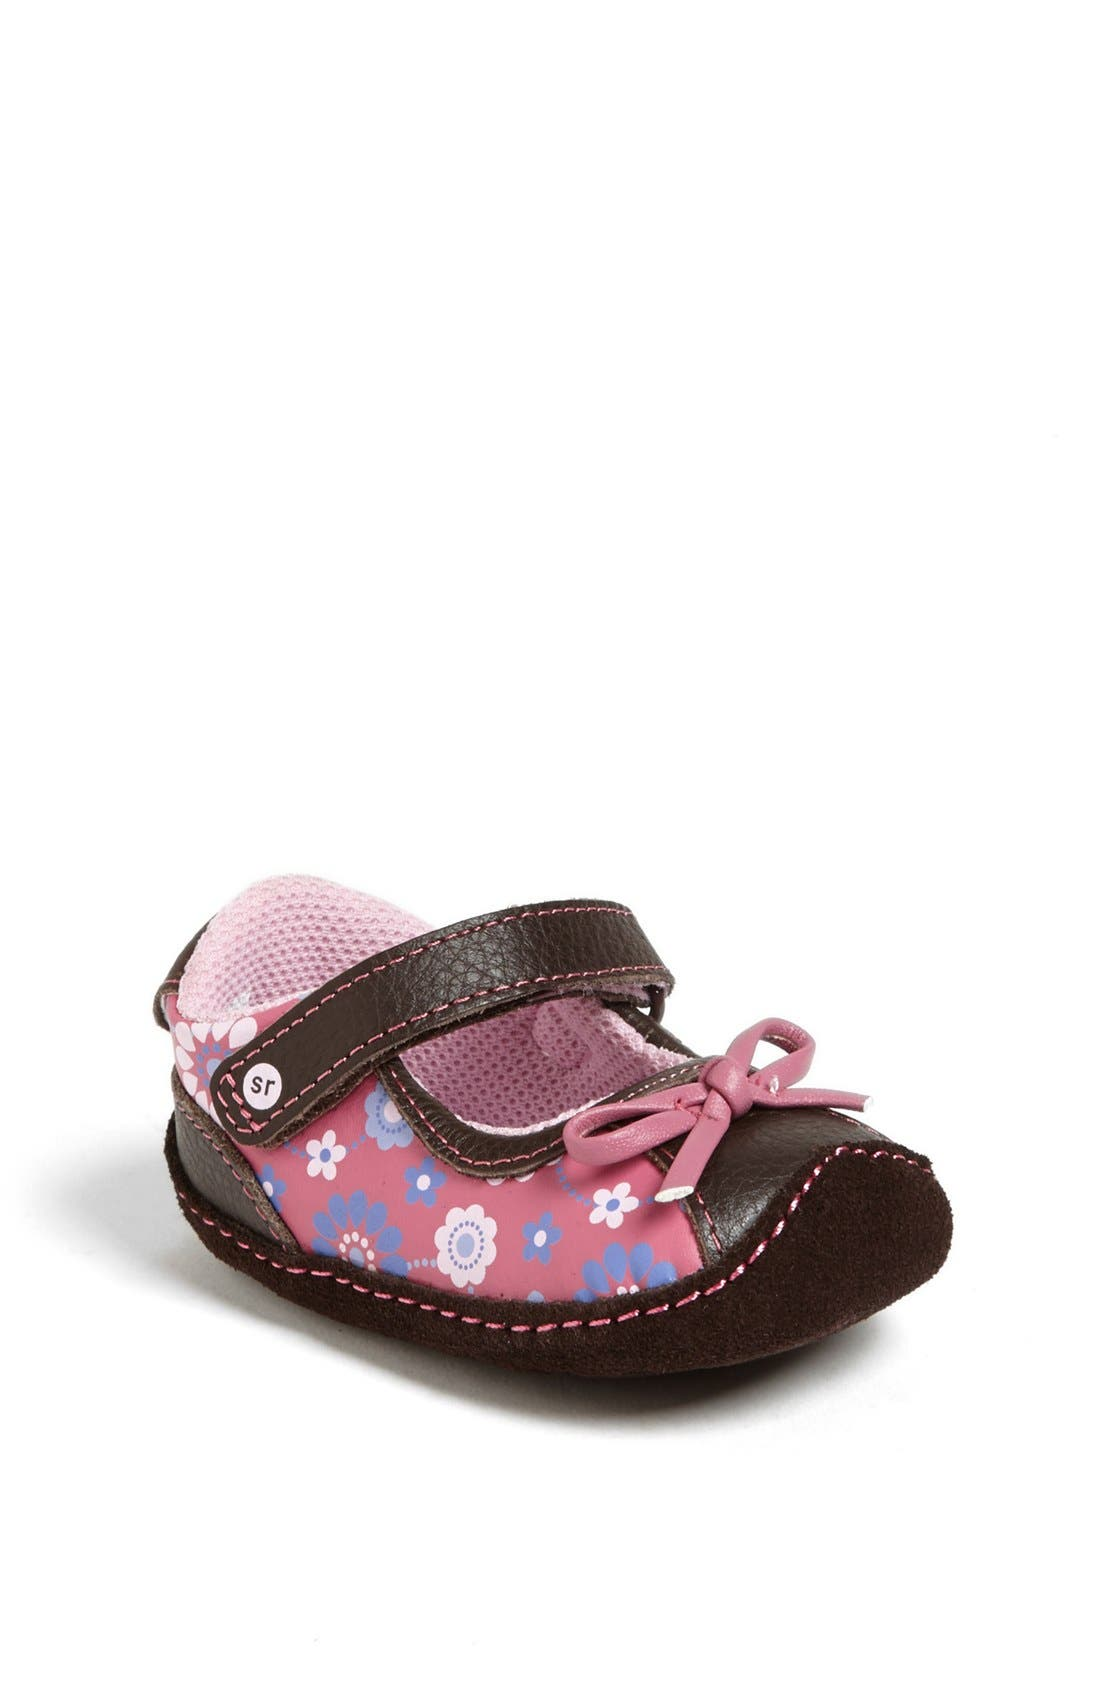 Main Image - Stride Rite 'Crawl - Dazzling Donna' Mary Jane (Baby Girls)